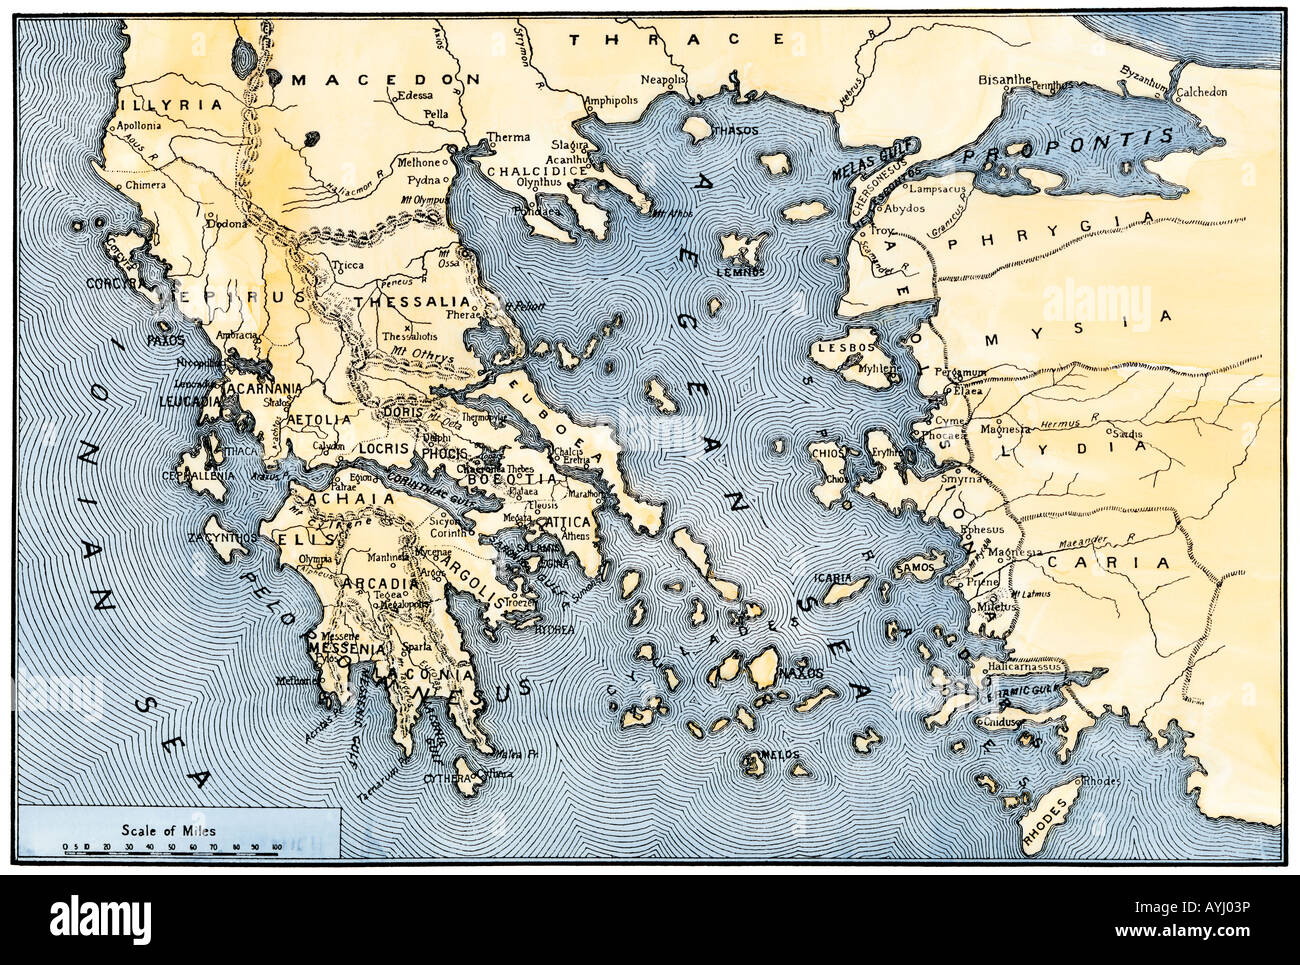 Map of ancient greece stock photos map of ancient greece stock map of ancient greece and its colonies stock image gumiabroncs Images